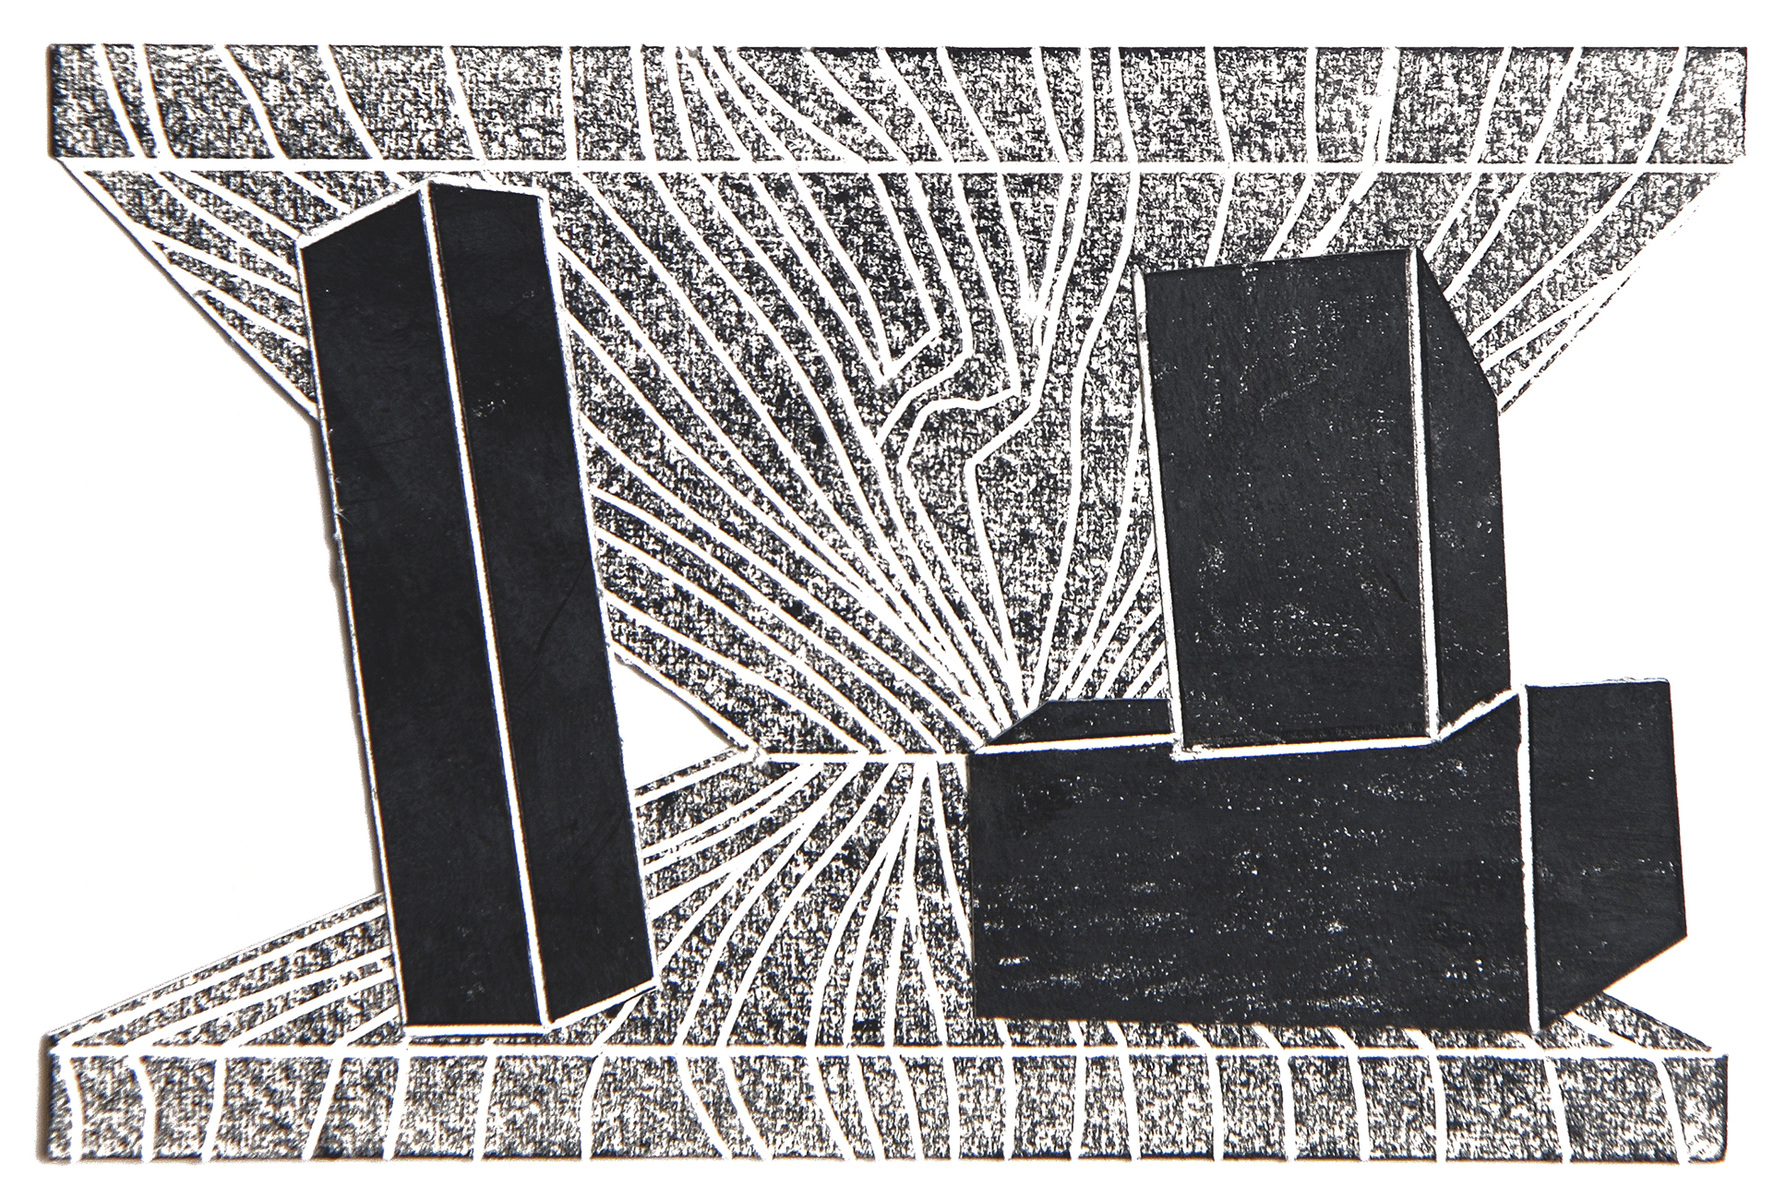 black drawings 2014-2015 Untitled